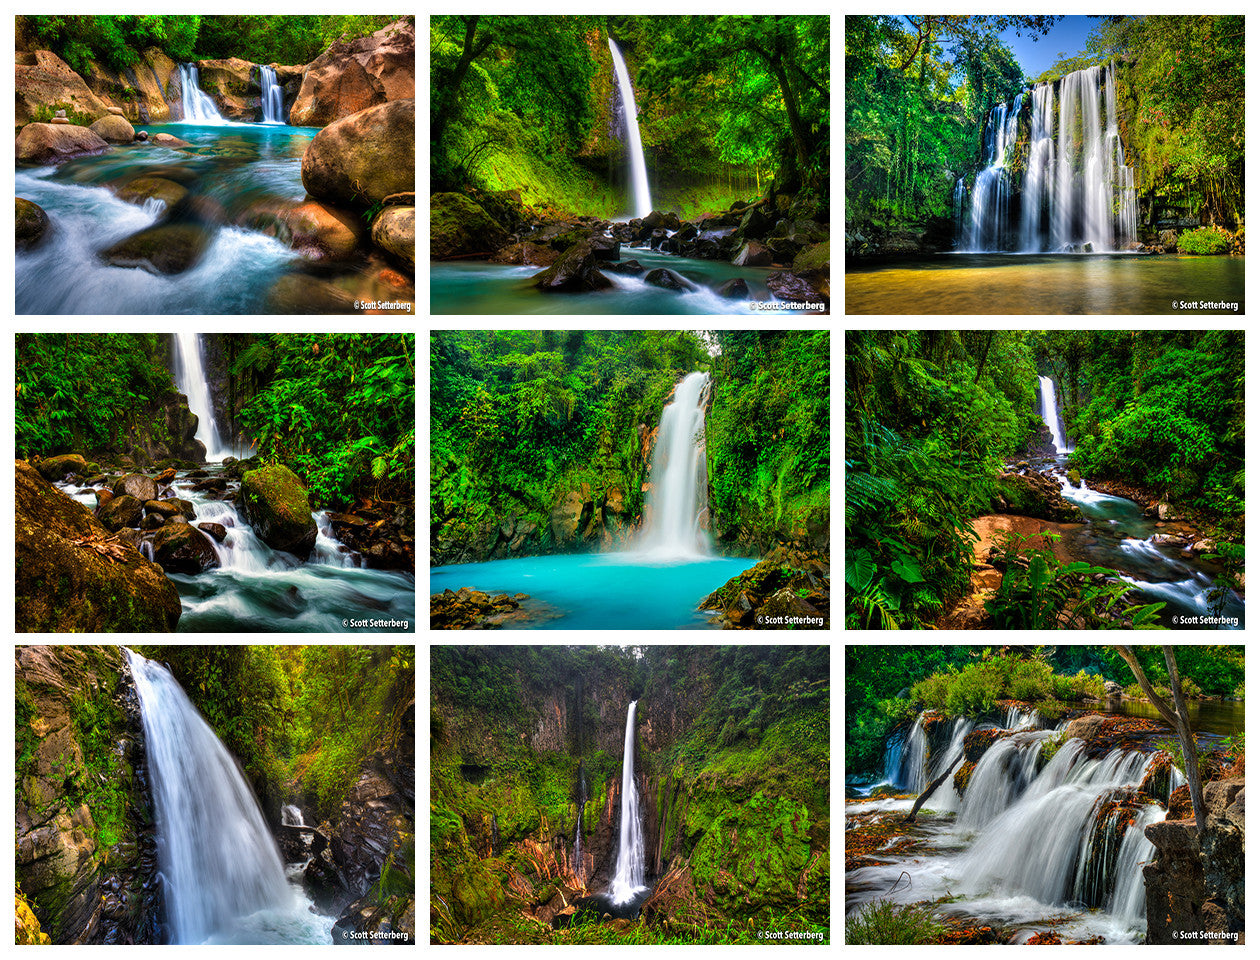 Costa Rica Amazing Waterfalls Photo Tour Grid